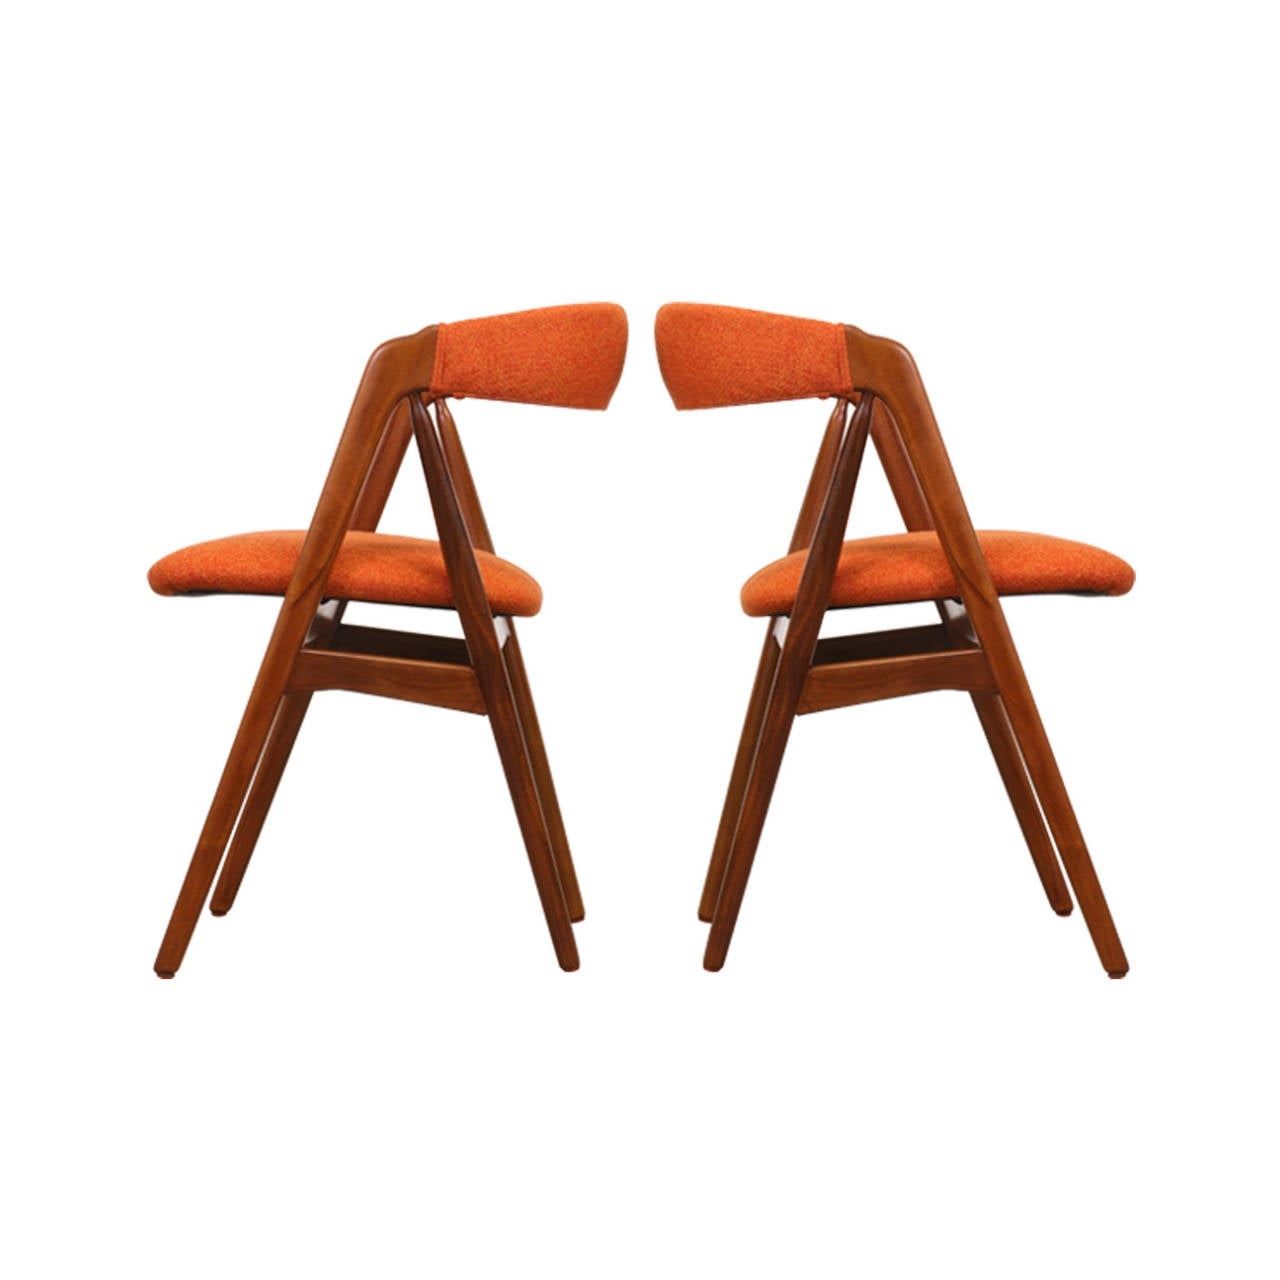 Kai kristiansen a frame dining chairs for sale at 1stdibs - Kai kristiansen chairs ...